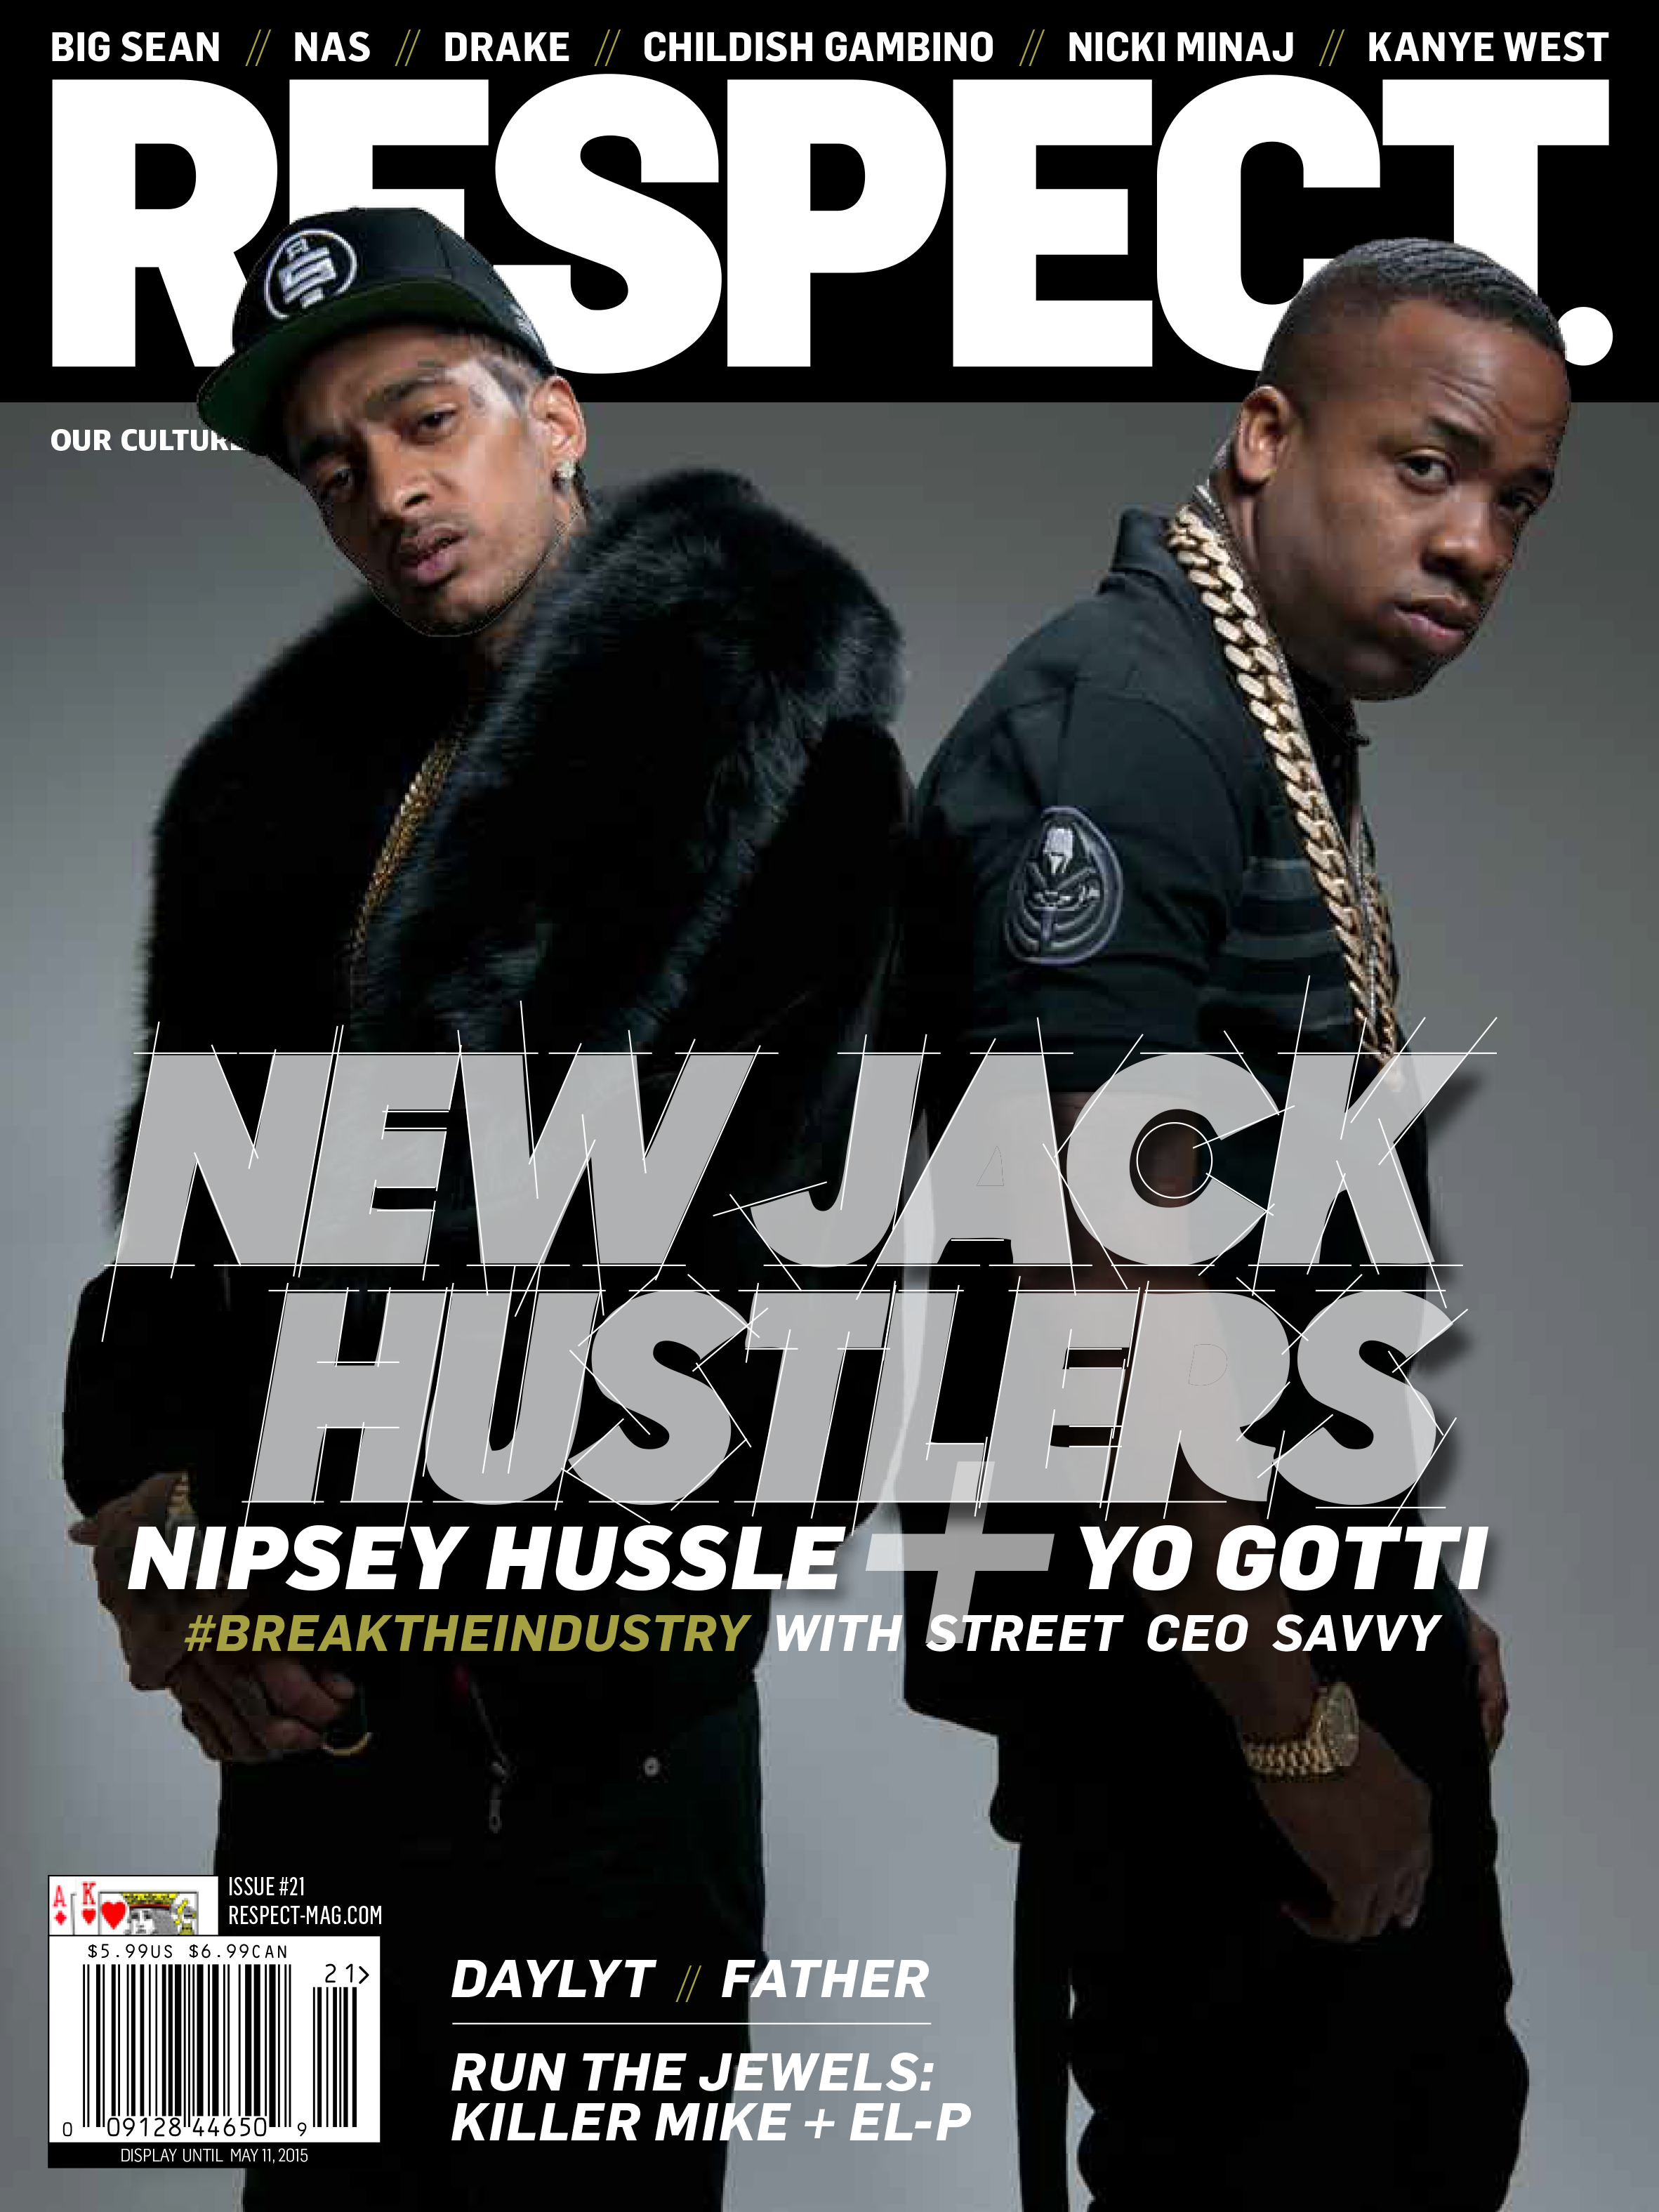 America's Most Wanted: Nipsey Hussle & Yo Gotti cover